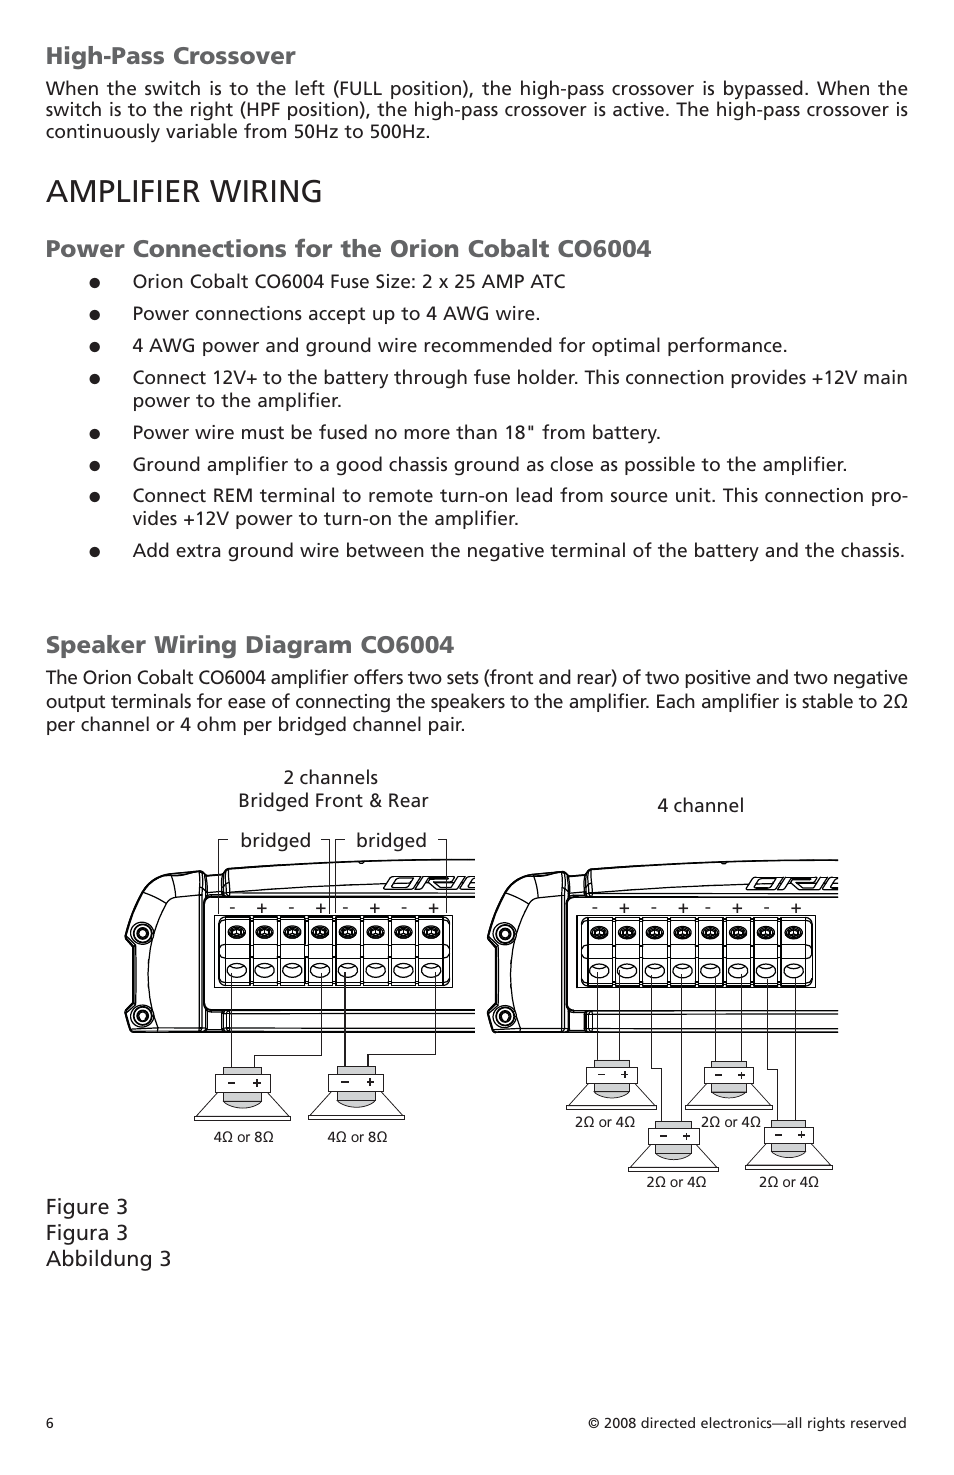 medium resolution of amplifier wiring high pass crossover power connections for the orion cobalt co6004 orion car audio co6004 user manual page 7 66